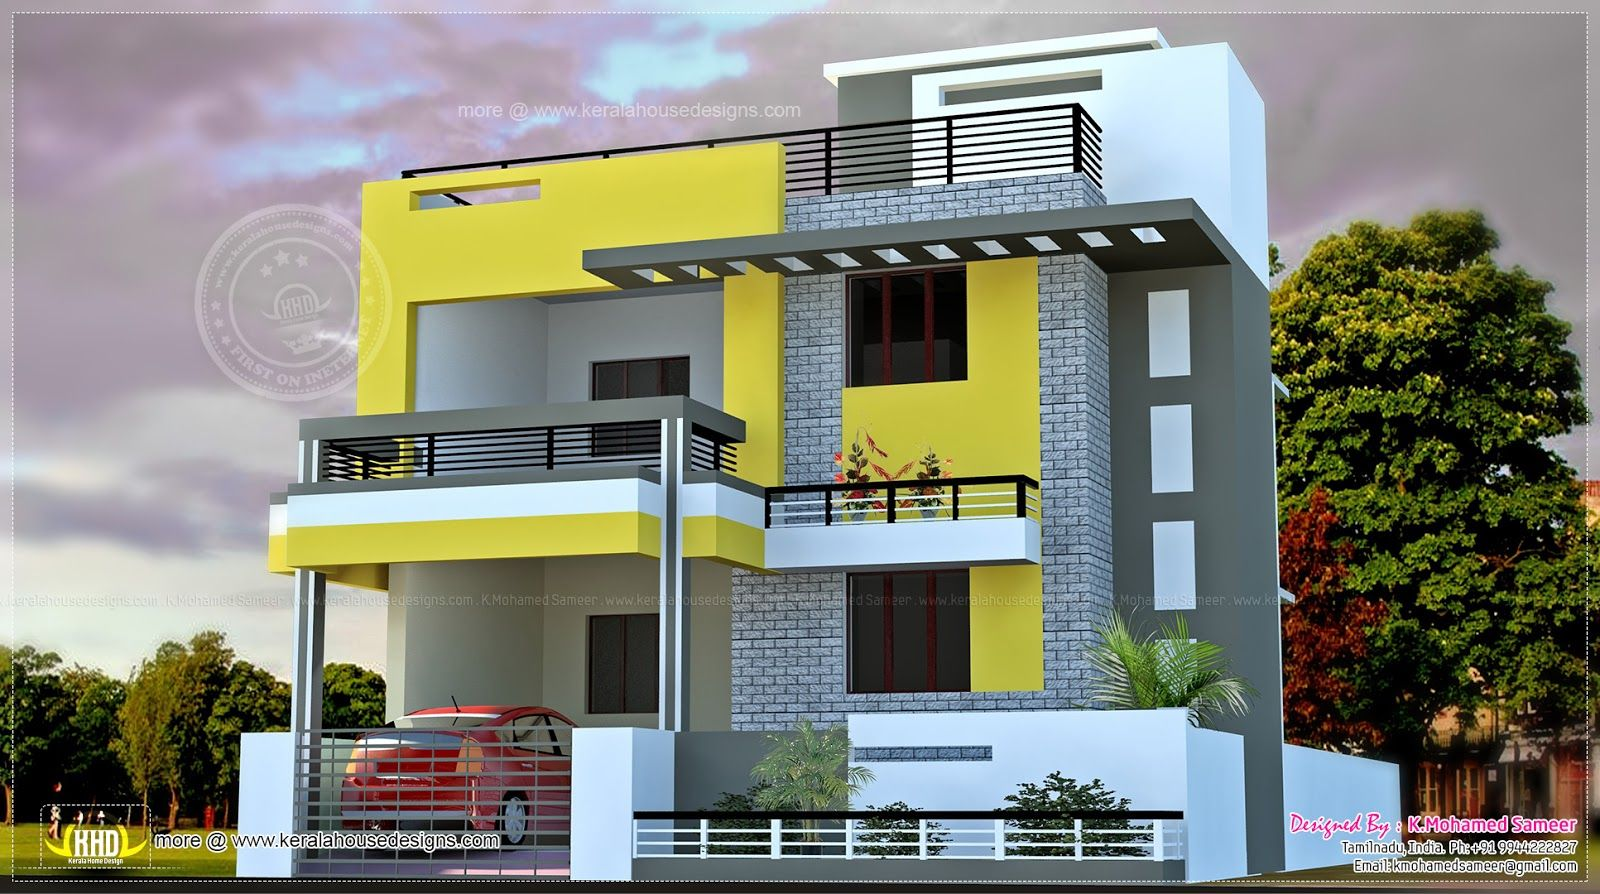 Nadu Building Plan Elevation Front View : Elevations of residential buildings in indian photo